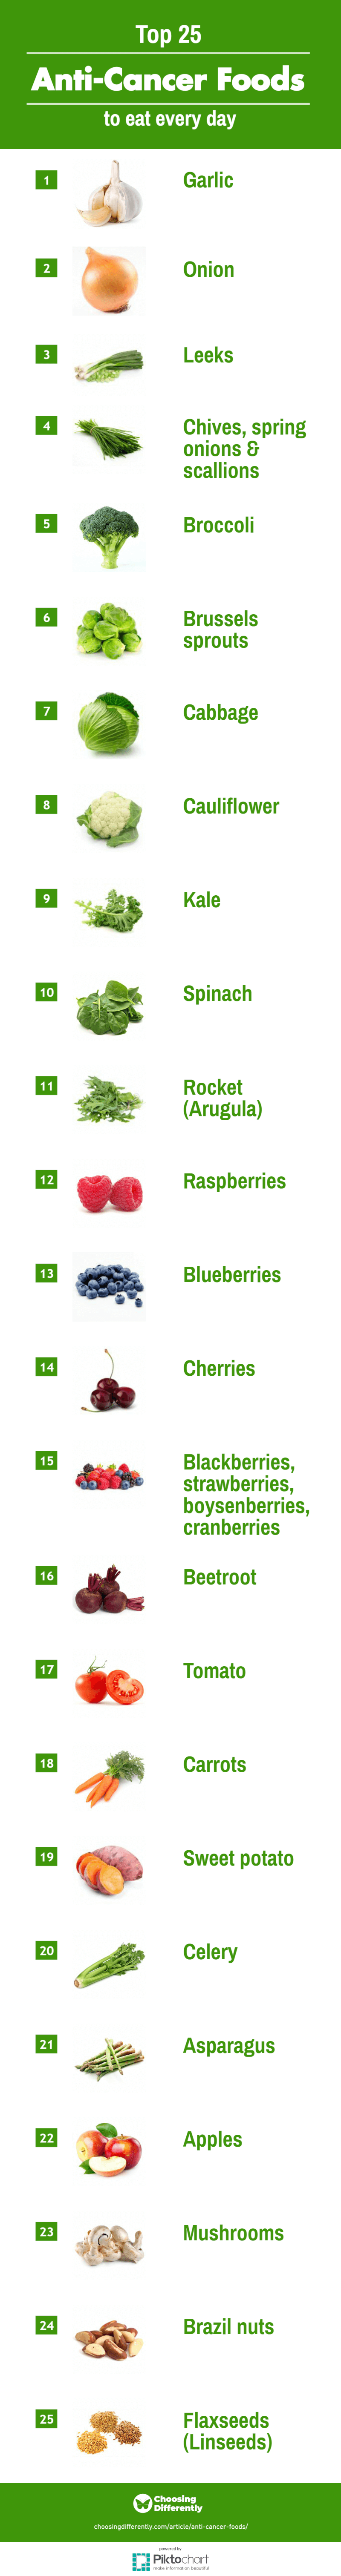 Top 25 anti-cancer foods to eat every day